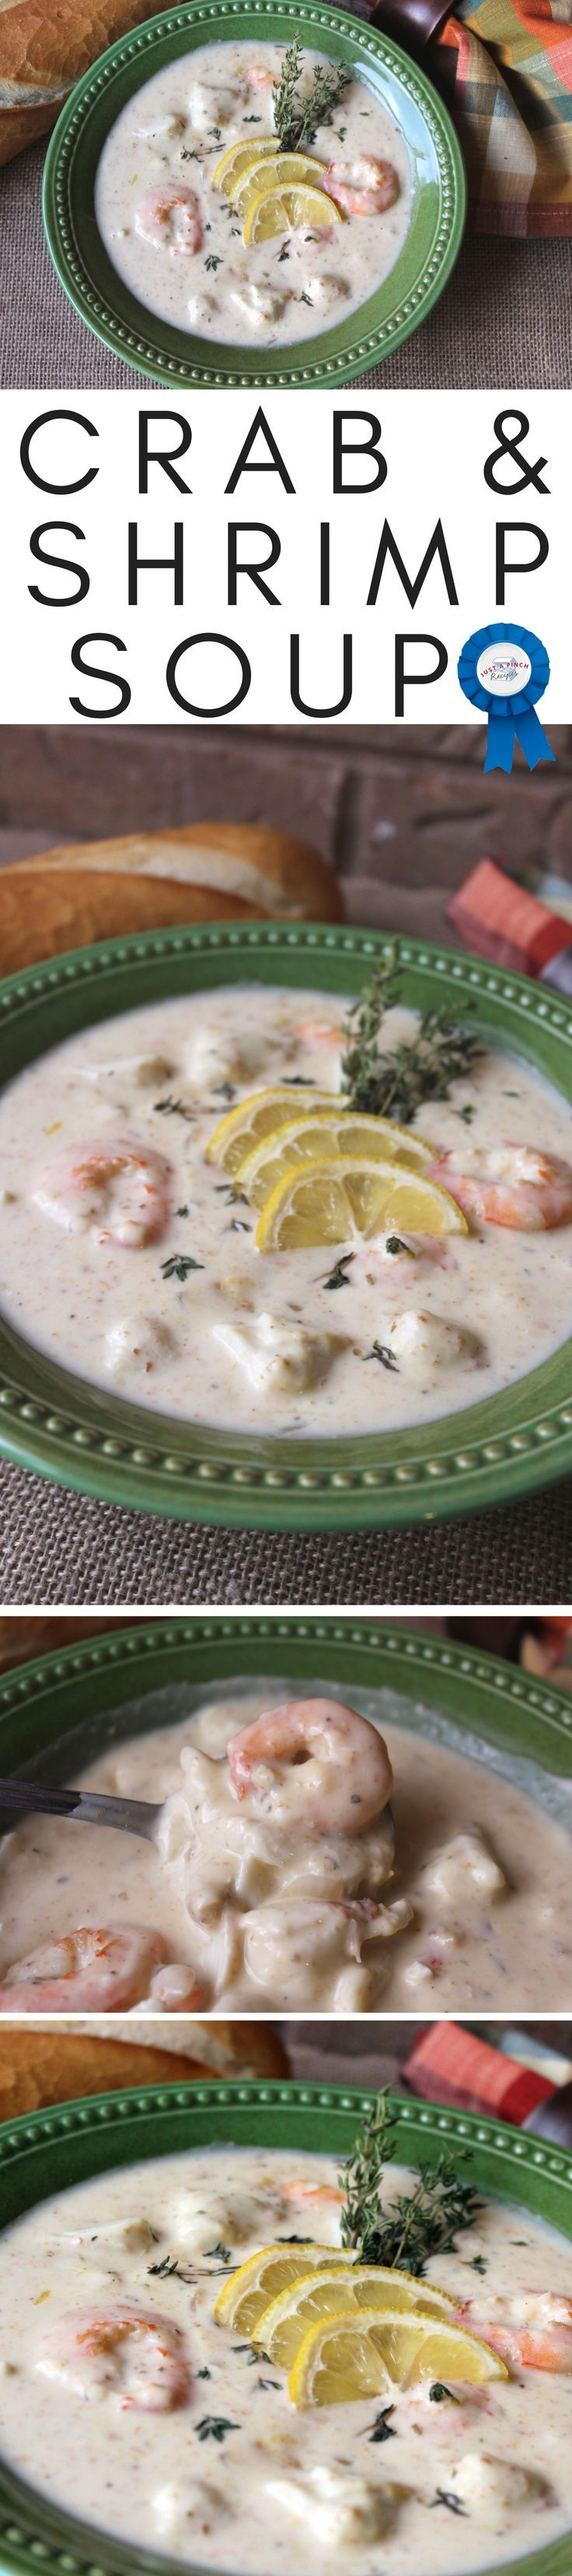 This creamy soup is not only quick and easy to throw together, but it is so good. Full of shrimp and big sweet lumps of crab, the flavor combinations are great!